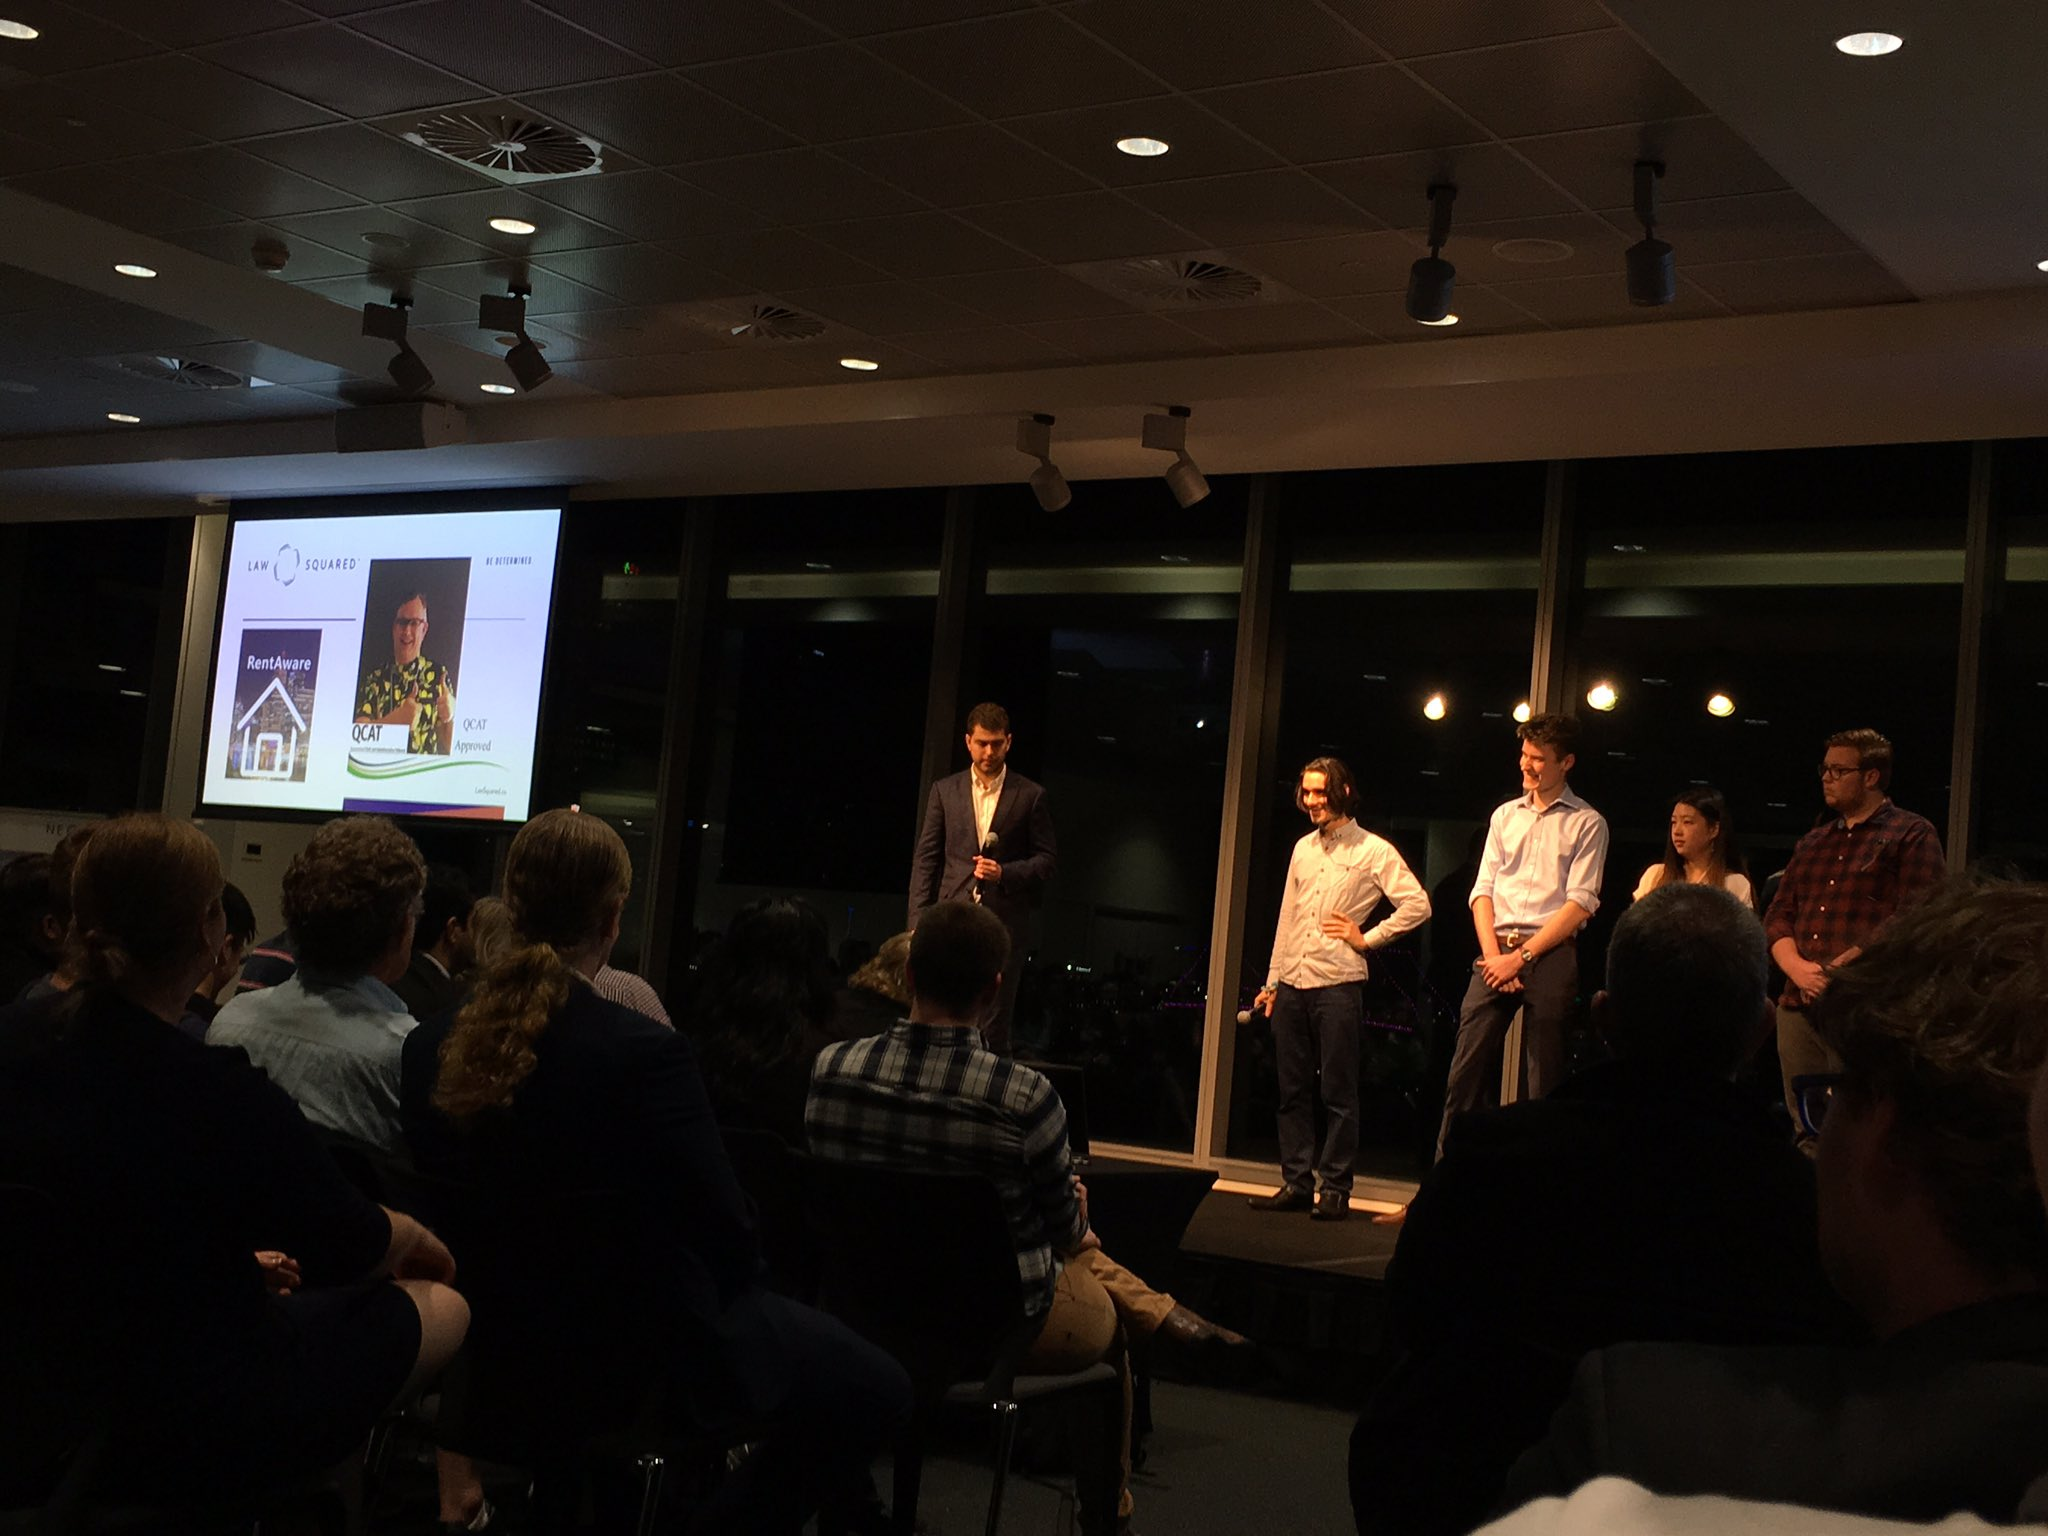 Congrats to team mentored by @lawsquaredco -pitch on Rent Aware was 👌  #DisruptingLaw & rental relationship #legaltech #auslaw #startupaus https://t.co/uC6DCciLX0